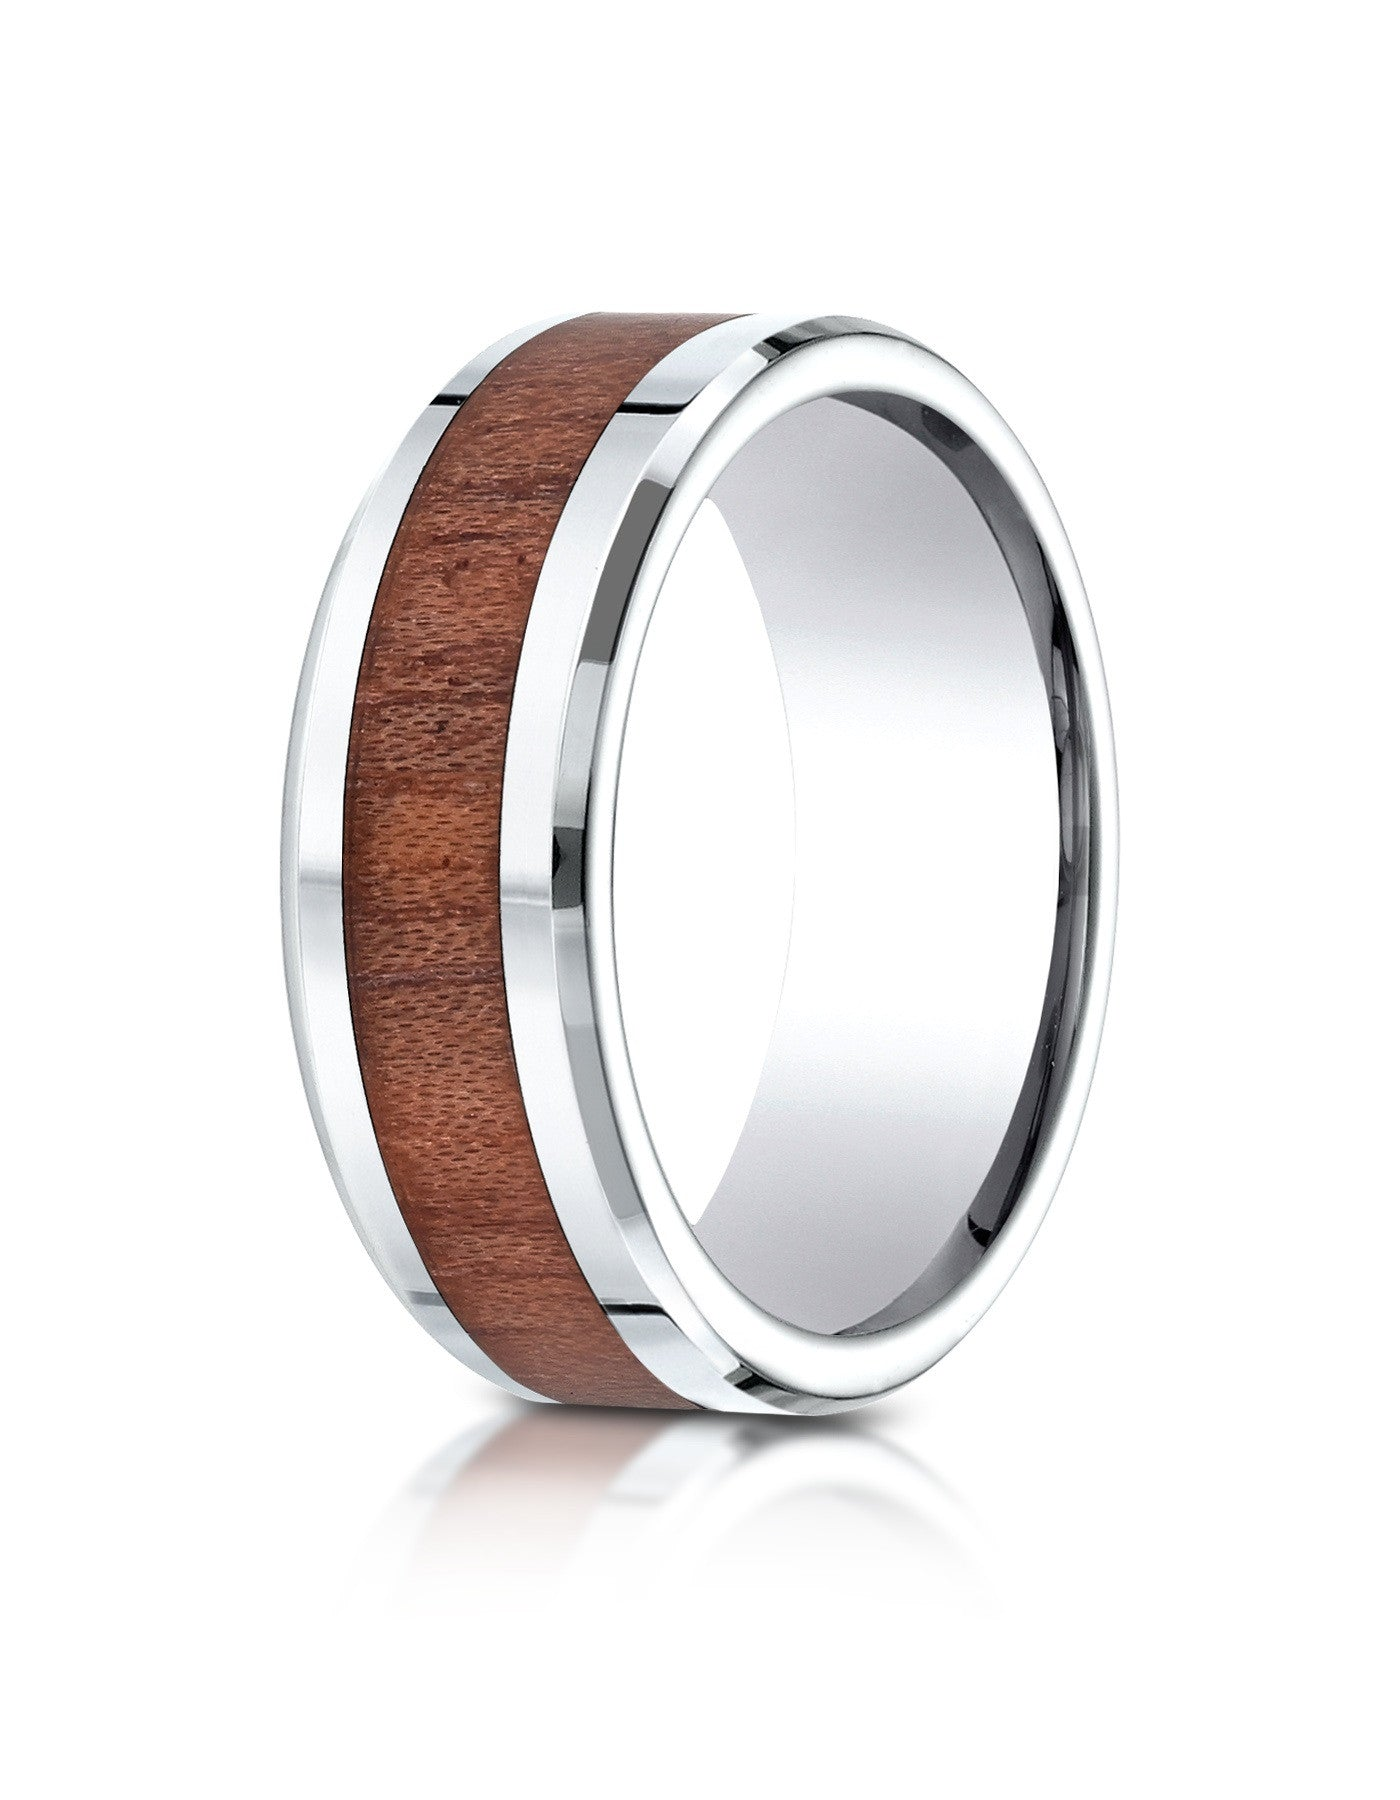 TURIN Mens Cobalt Beveled Rosewood Inlay Cobalt Wedding Band